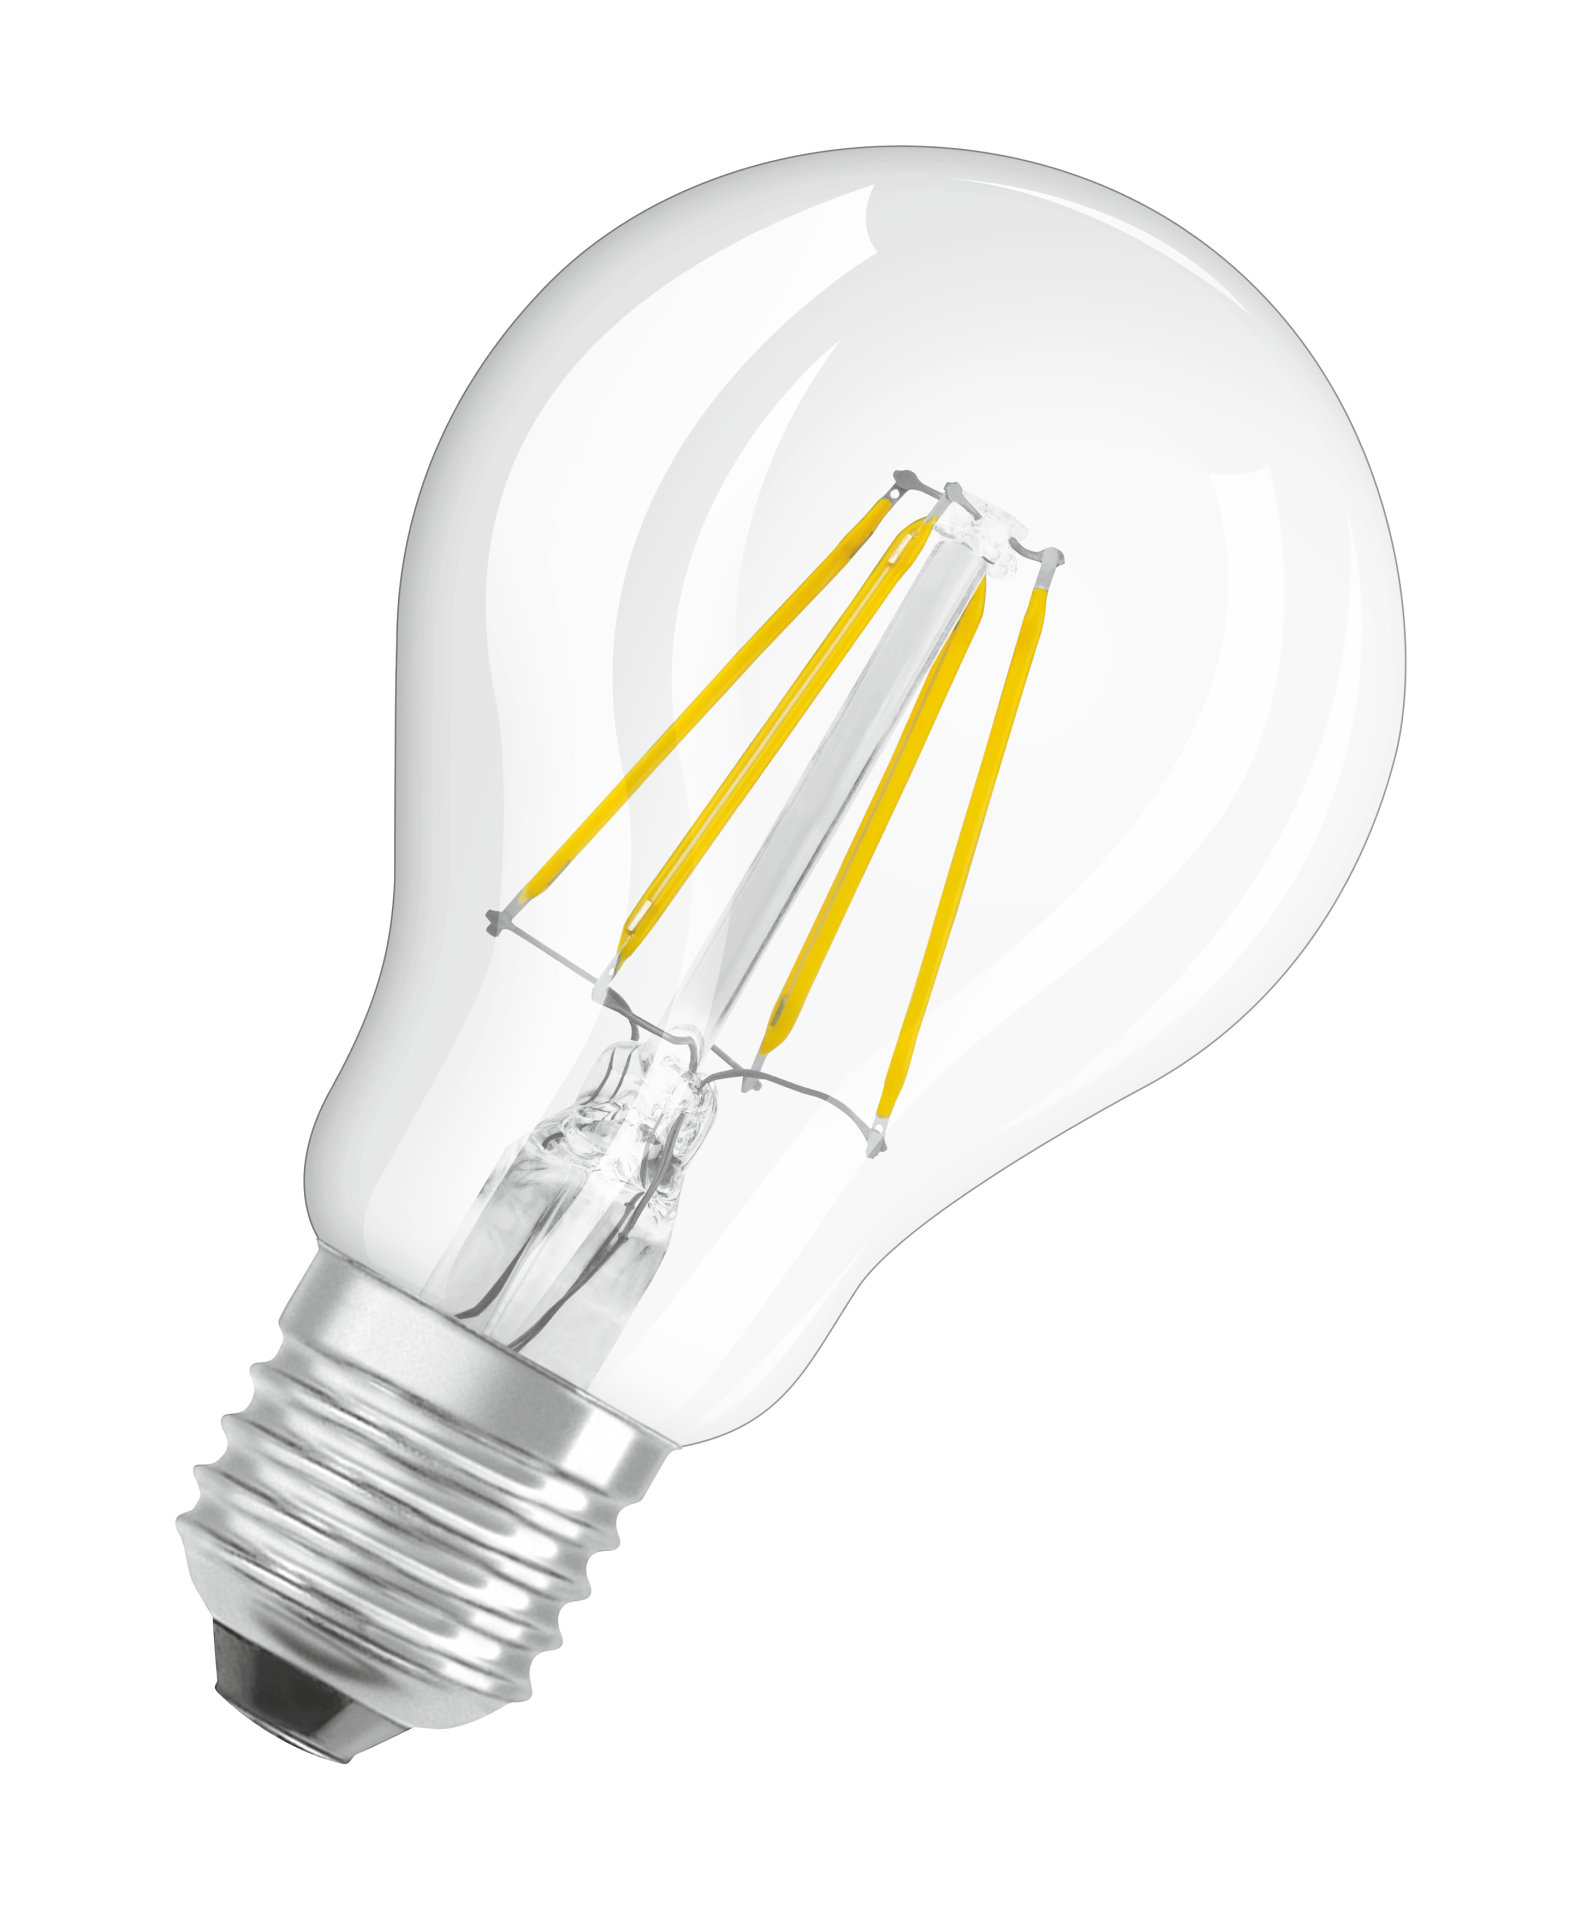 Professional LED lamps with filament-style LED technology